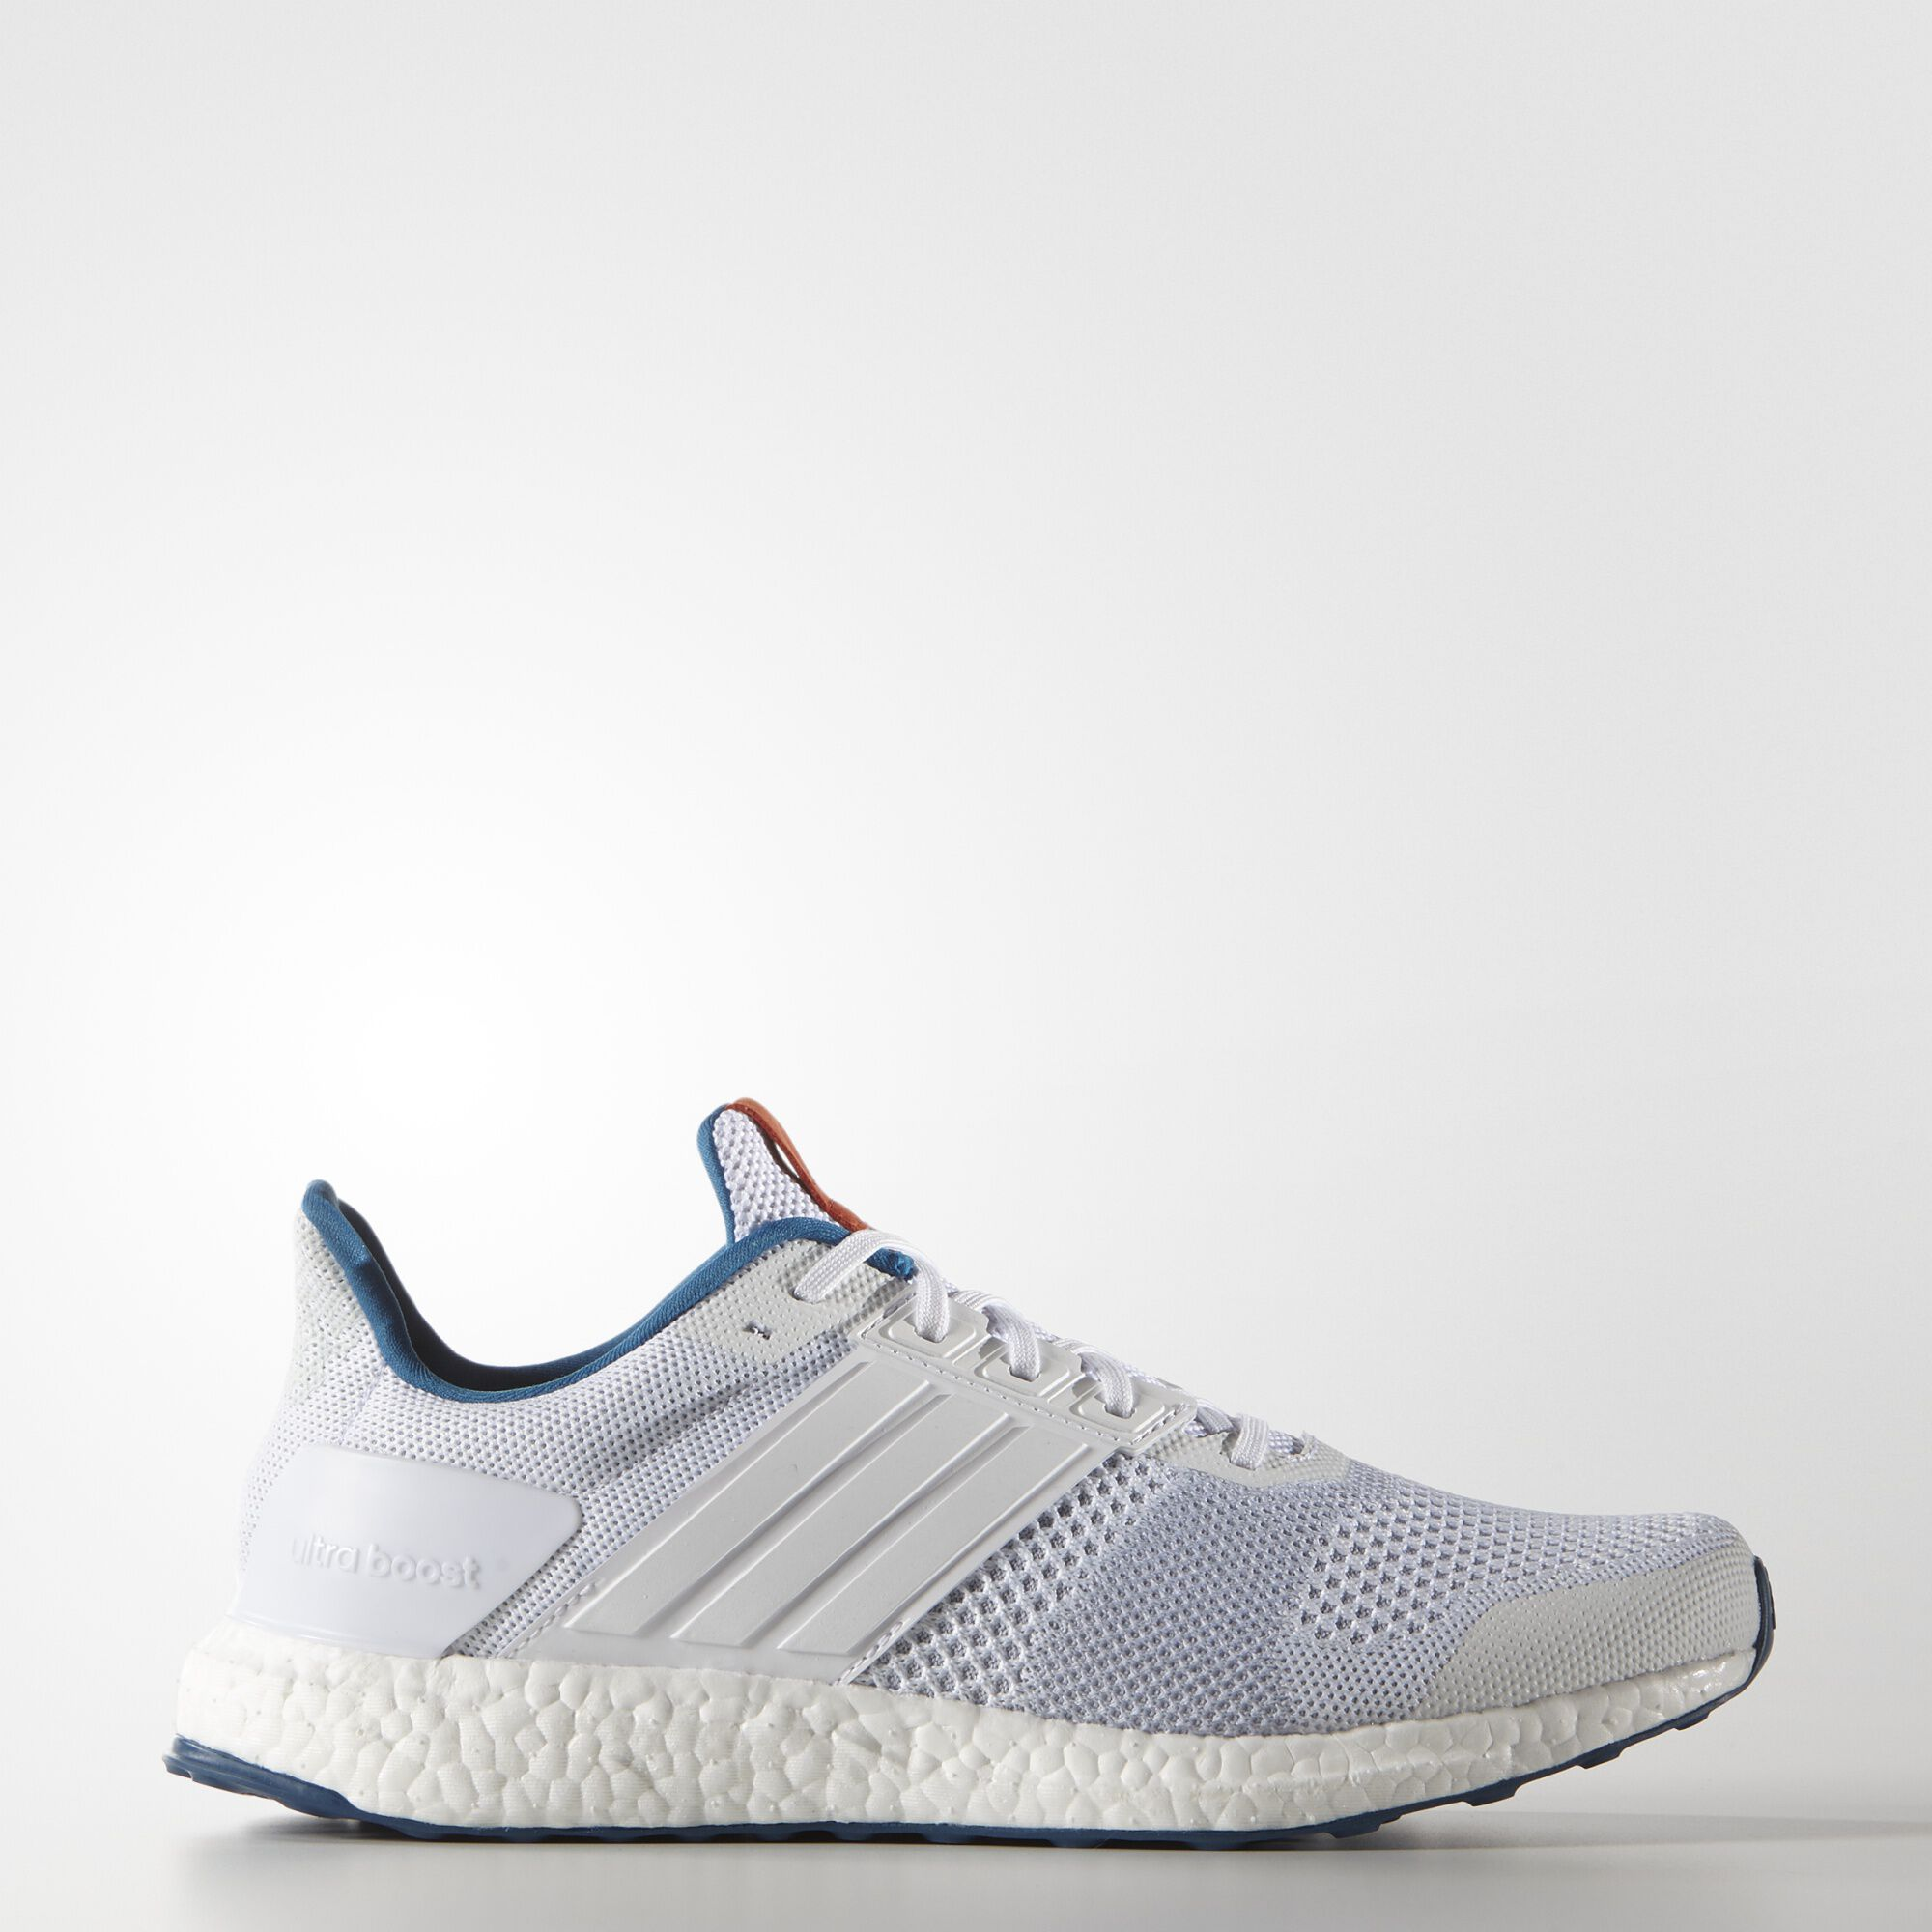 adidas ultra boost white out